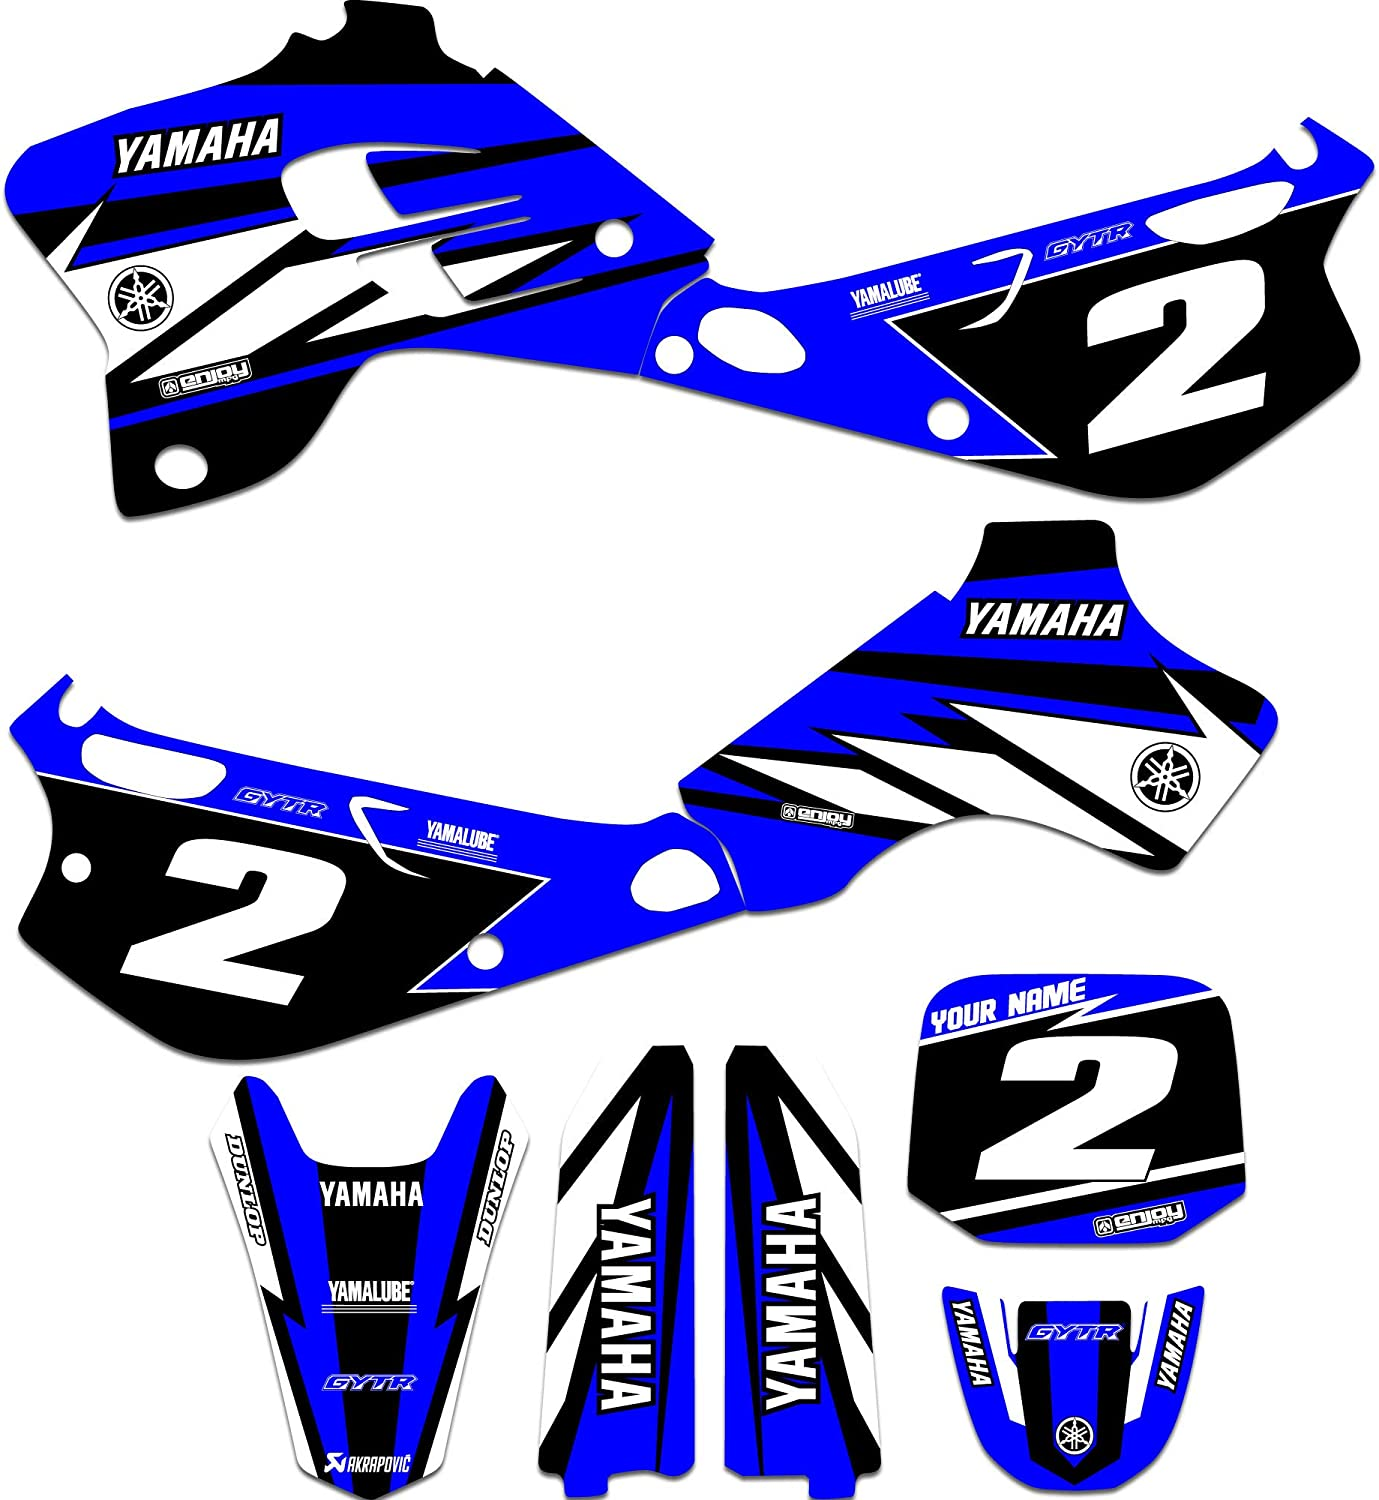 Enjoy Mfg Graphics Kit /& Custom Number Plate Combo Compatible Fit for 1993-2001 YAMAHA YZ 80 BLUE CHAMPION STYLE